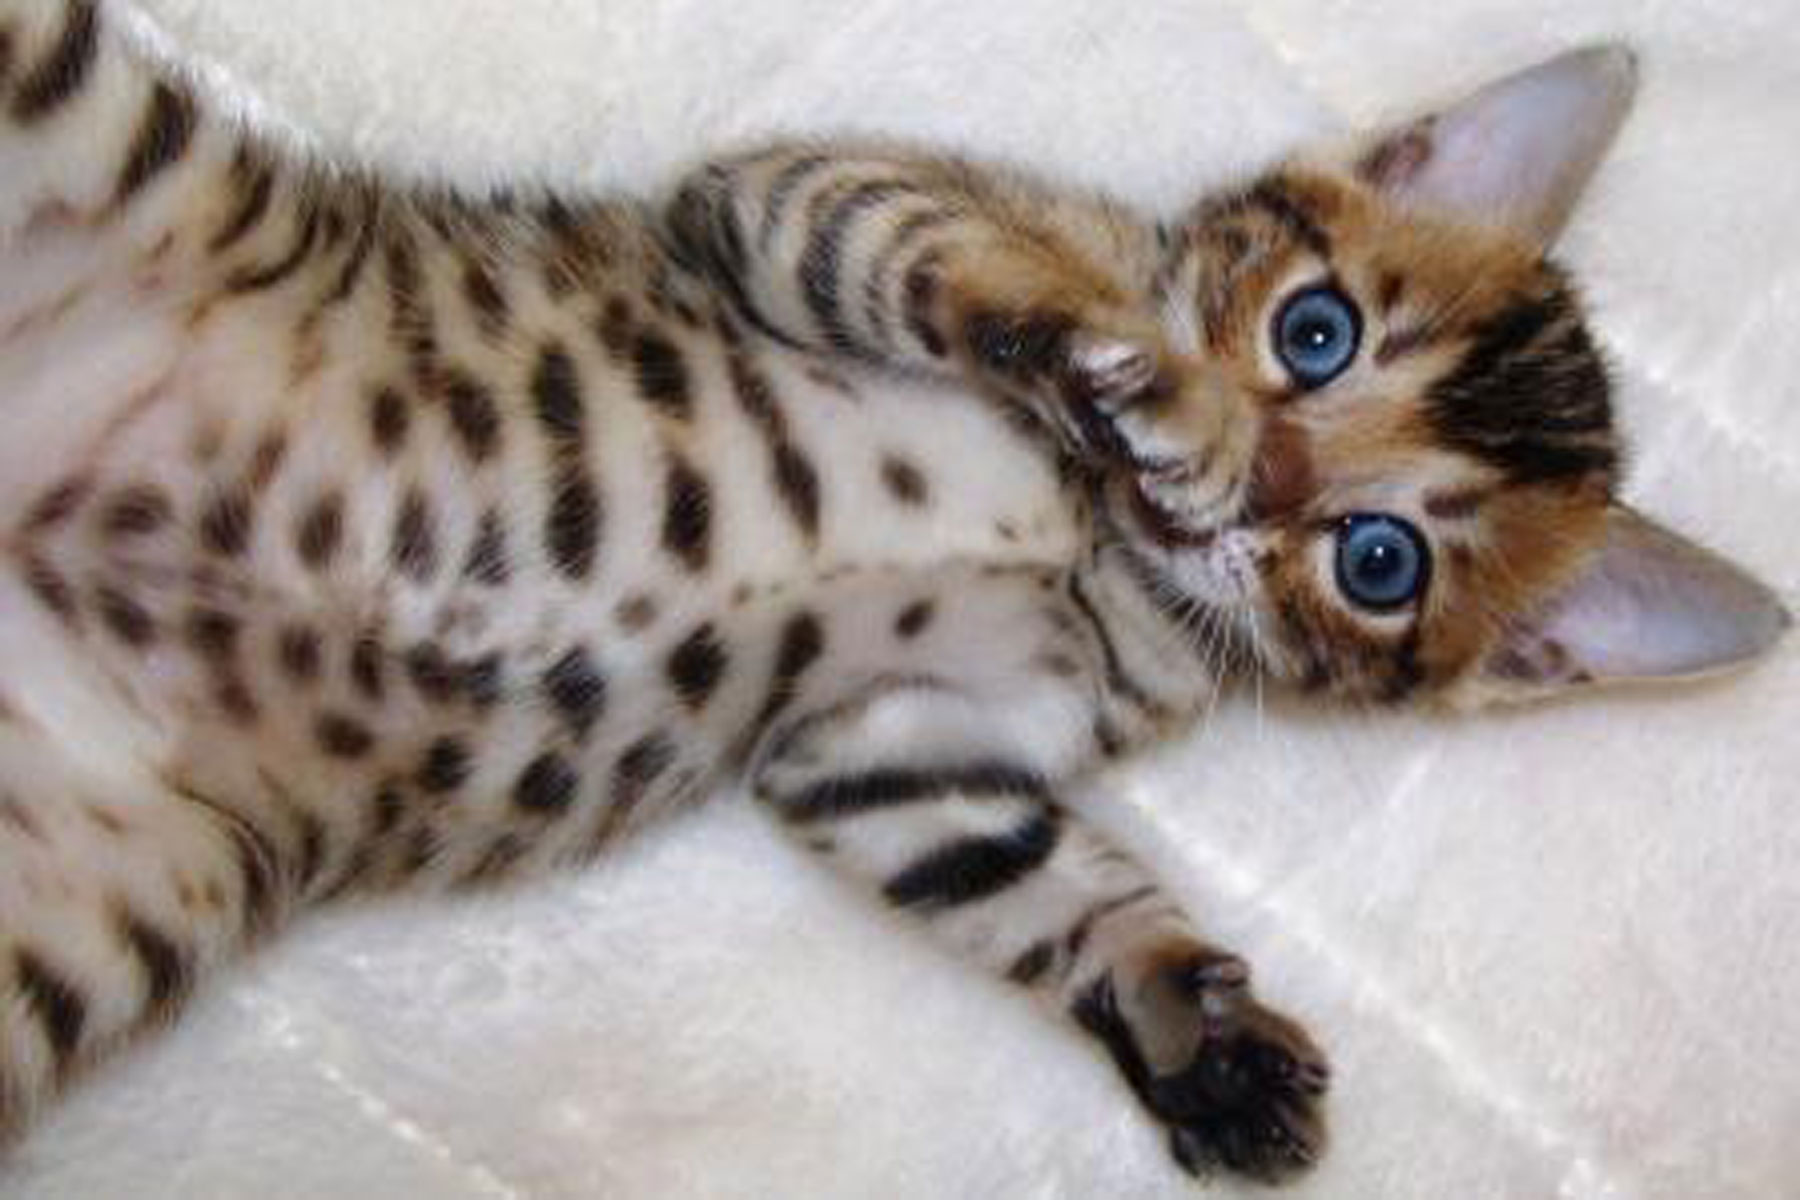 50 Cute Bengal Cat Kittens for Sale | Kittens cute wallpapers